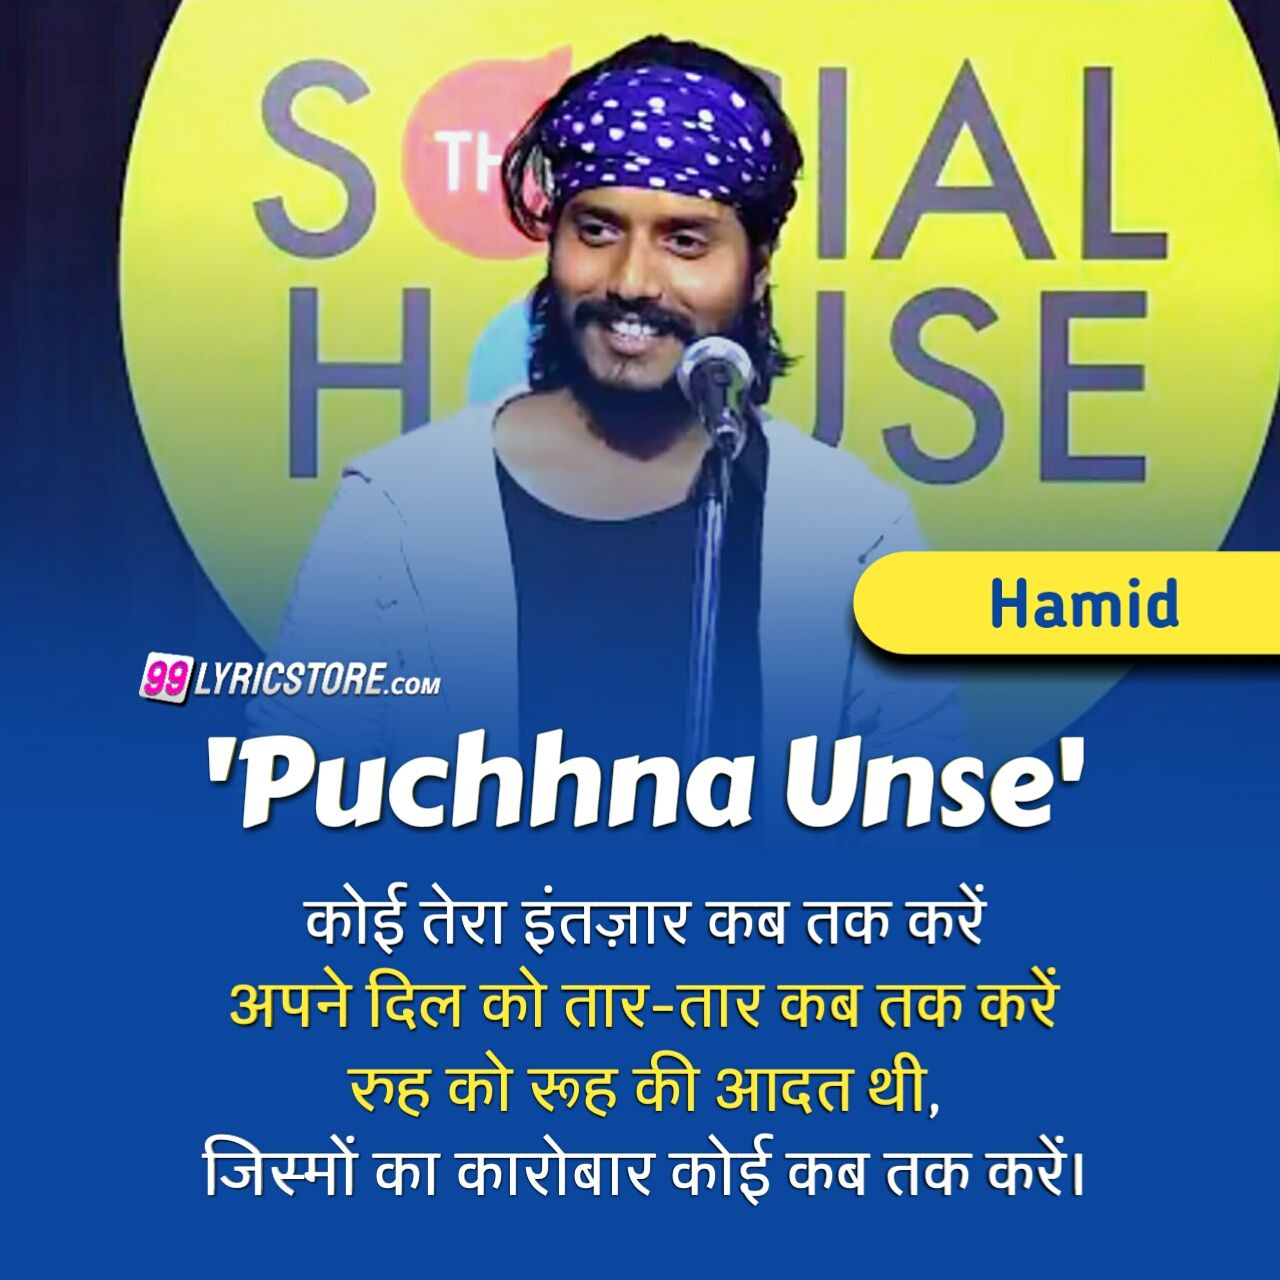 'Puchhna Unse' Poetry has written and performed by Hamid on The Social House's Plateform.